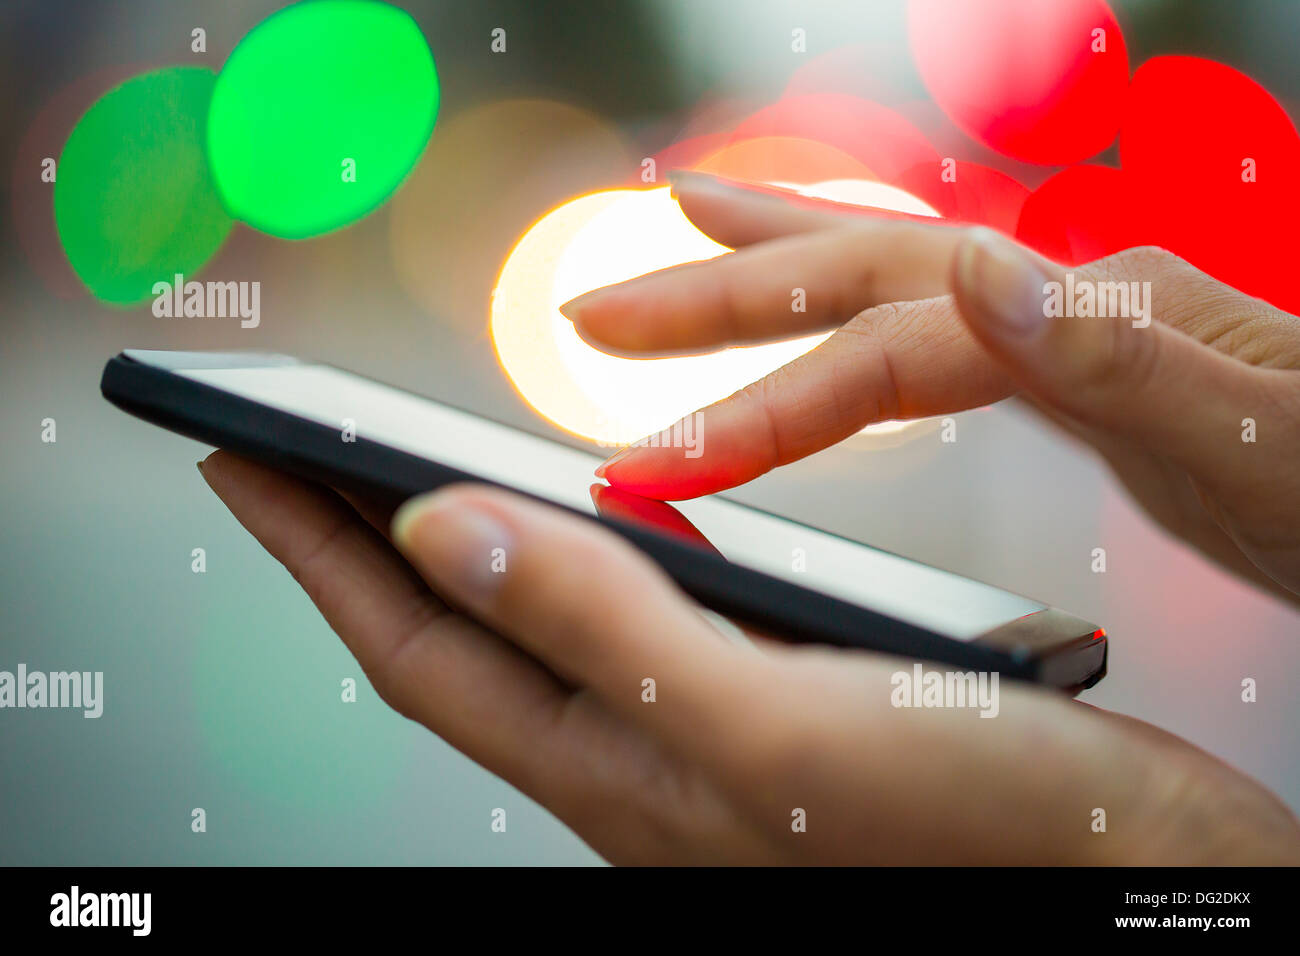 Female outdoor mobile phone city sms message - Stock Image